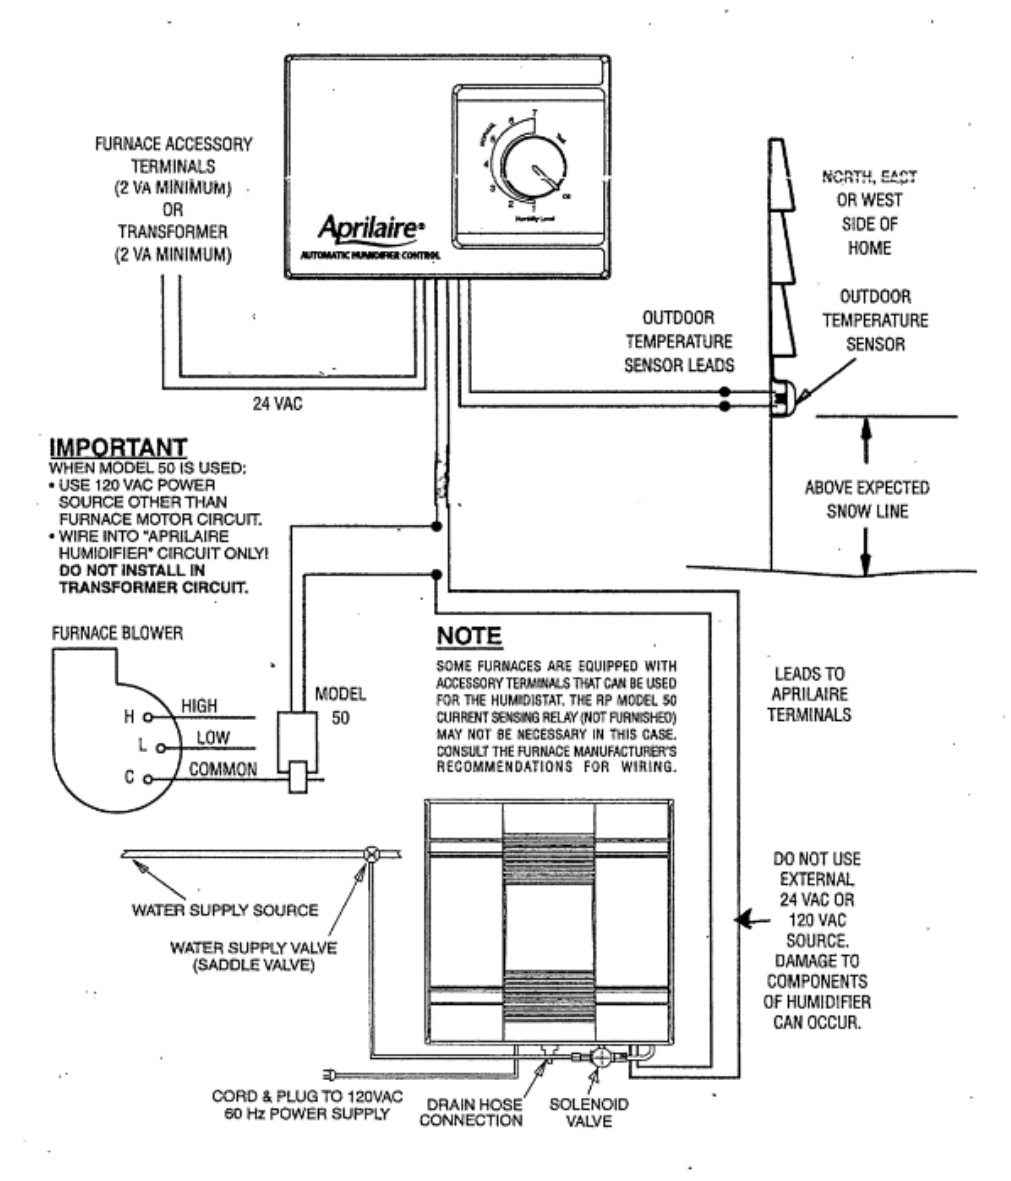 trane gas wiring as well as furnace transformer wiring diagram in